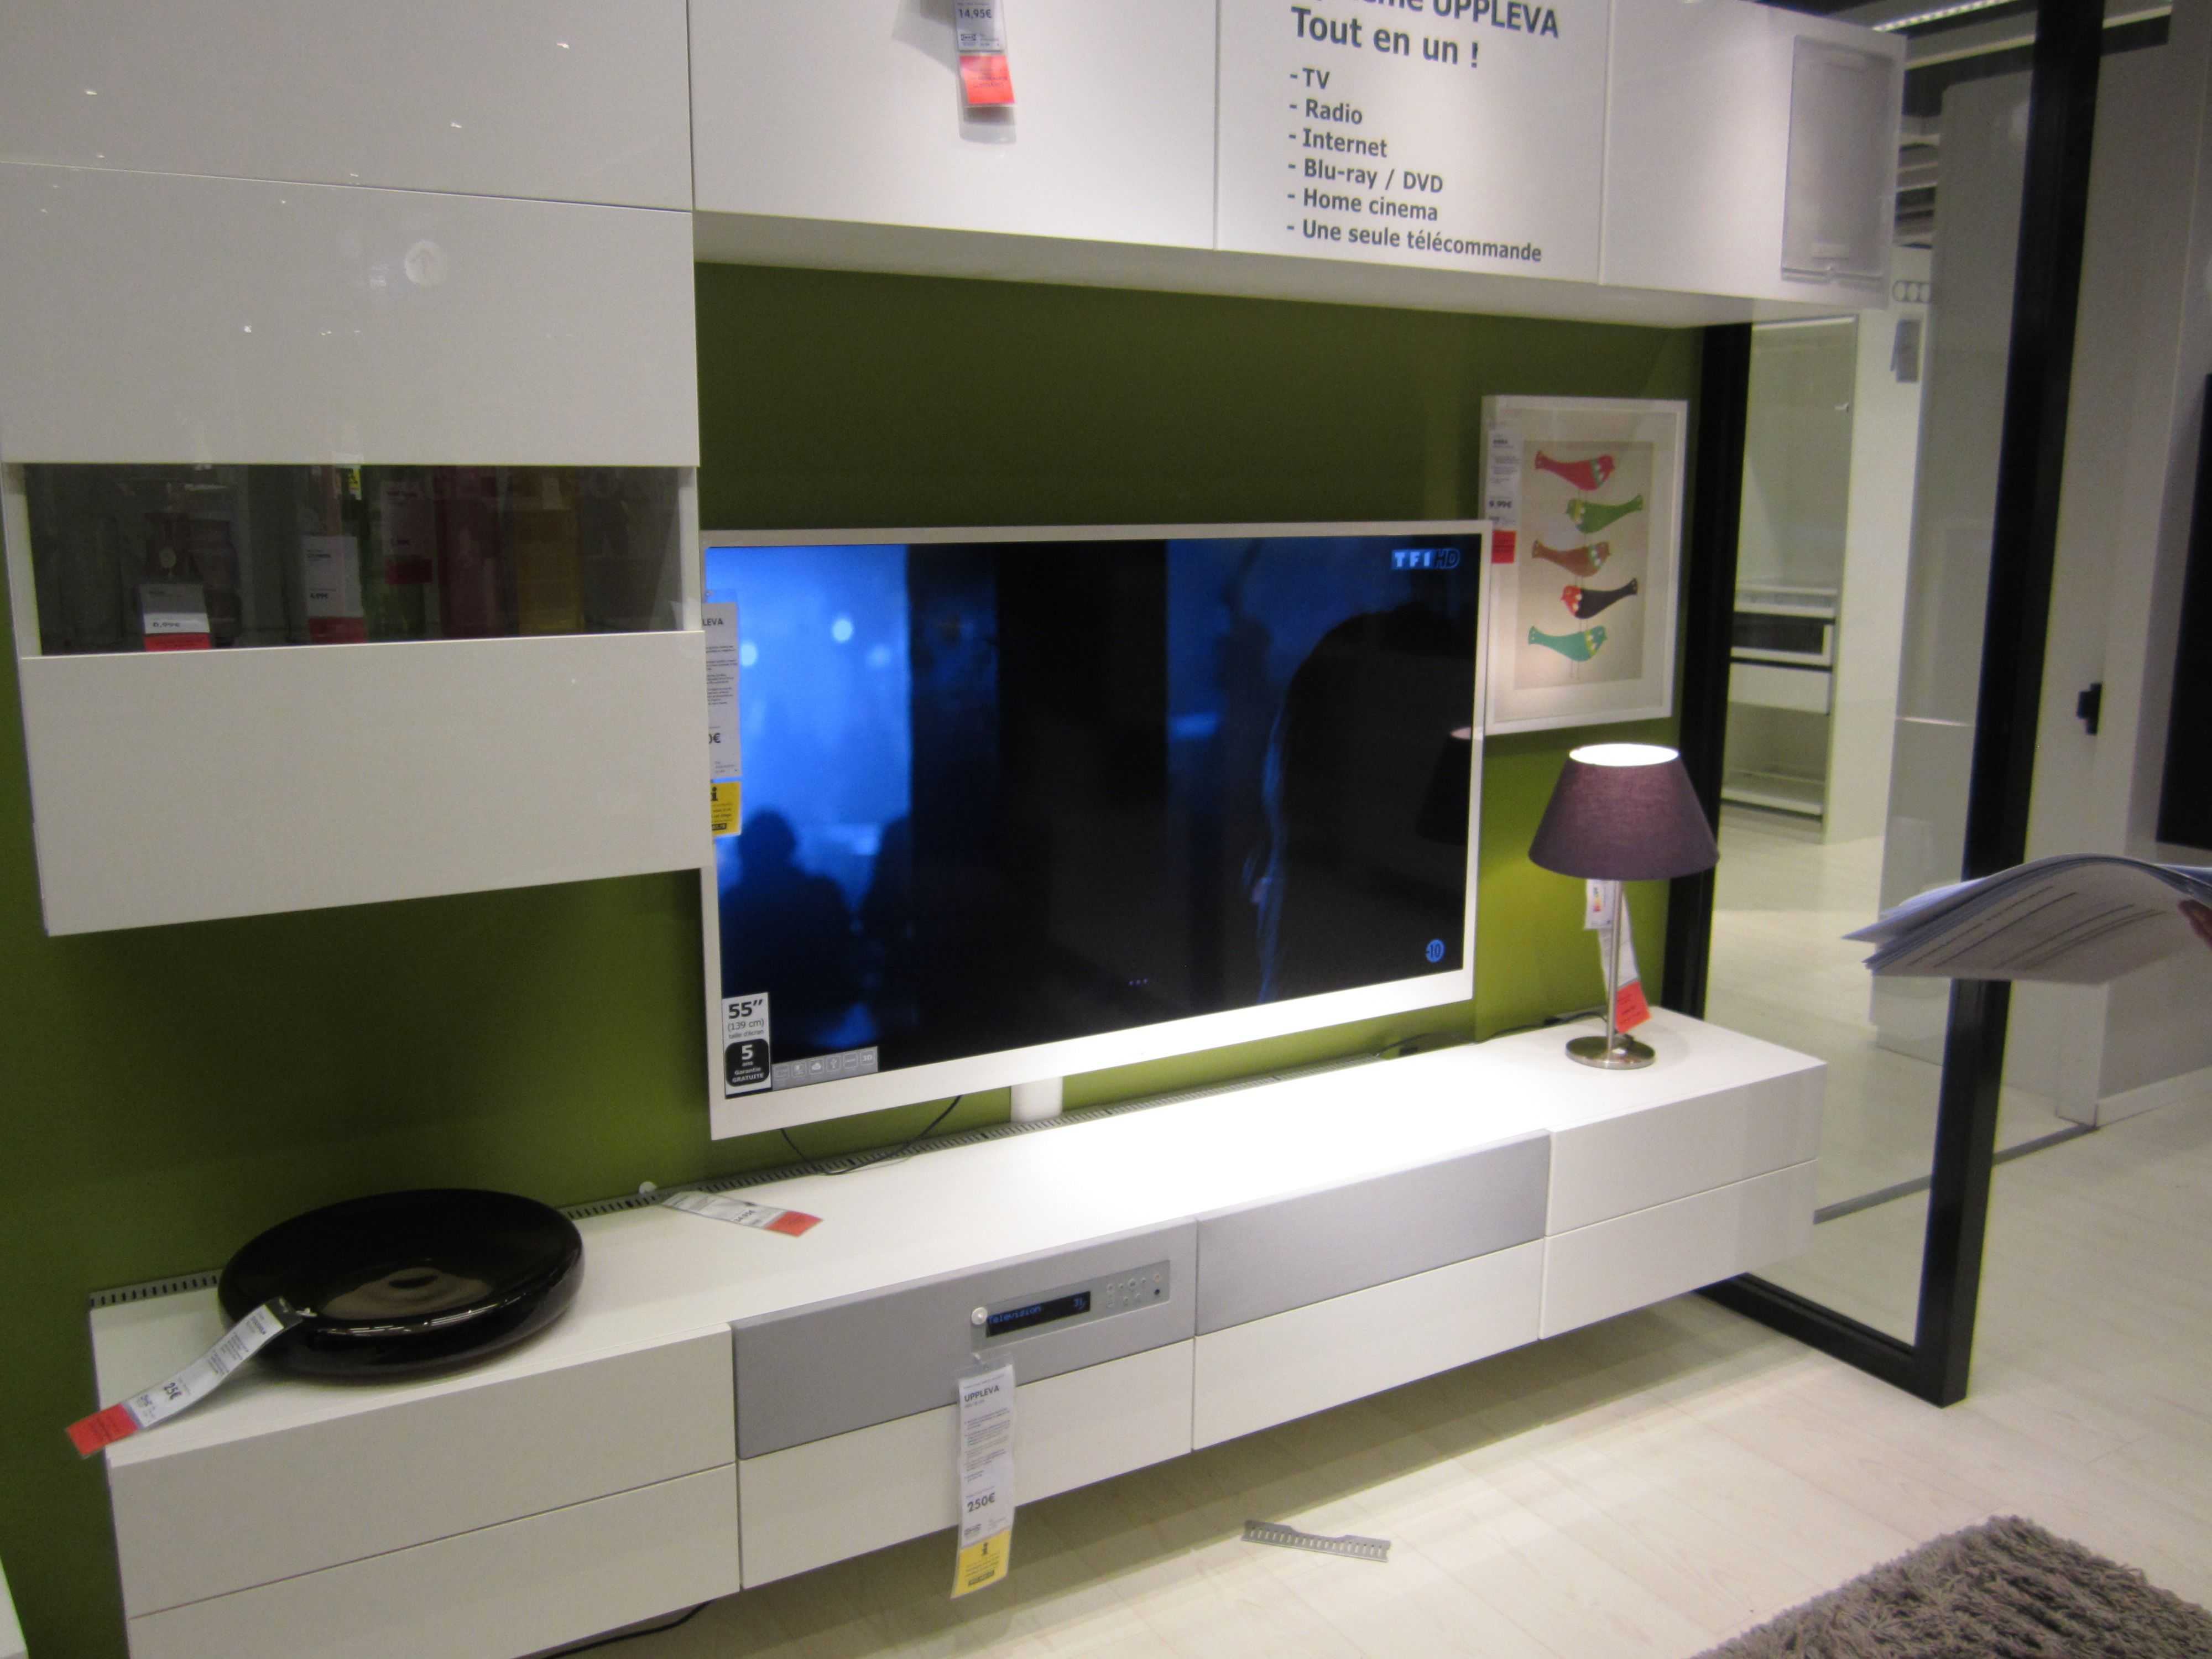 Meuble Cuisine Suspendu Ikea Meuble Ikea Tv Suspendu Uppleva Salon Pinterest Salons